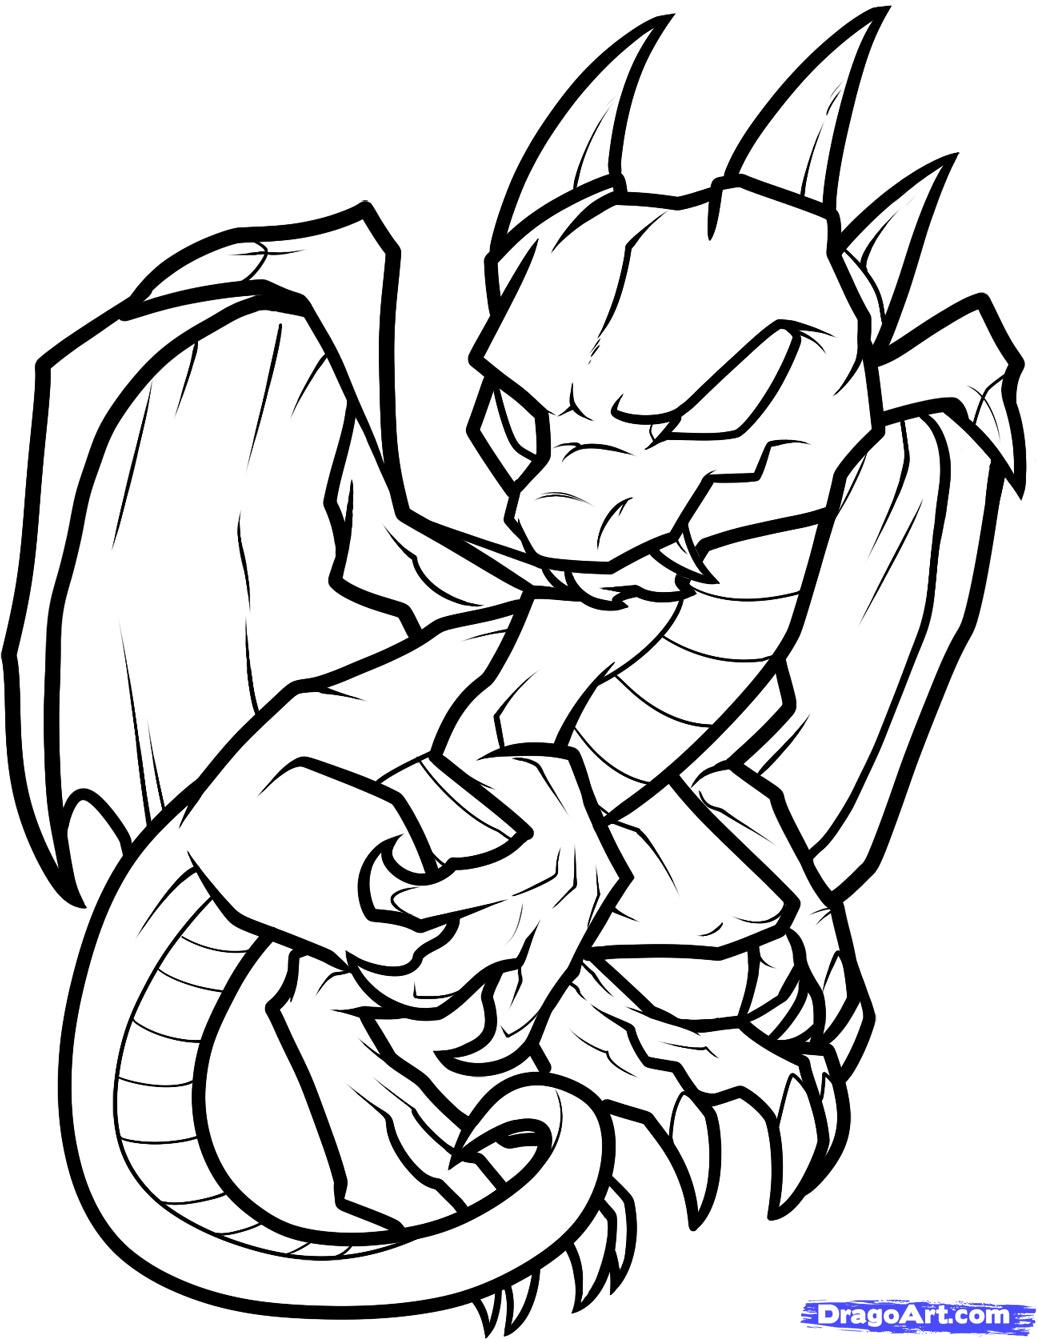 1038x1339 Dragon Drawing Tutorial With Pictures To Draw